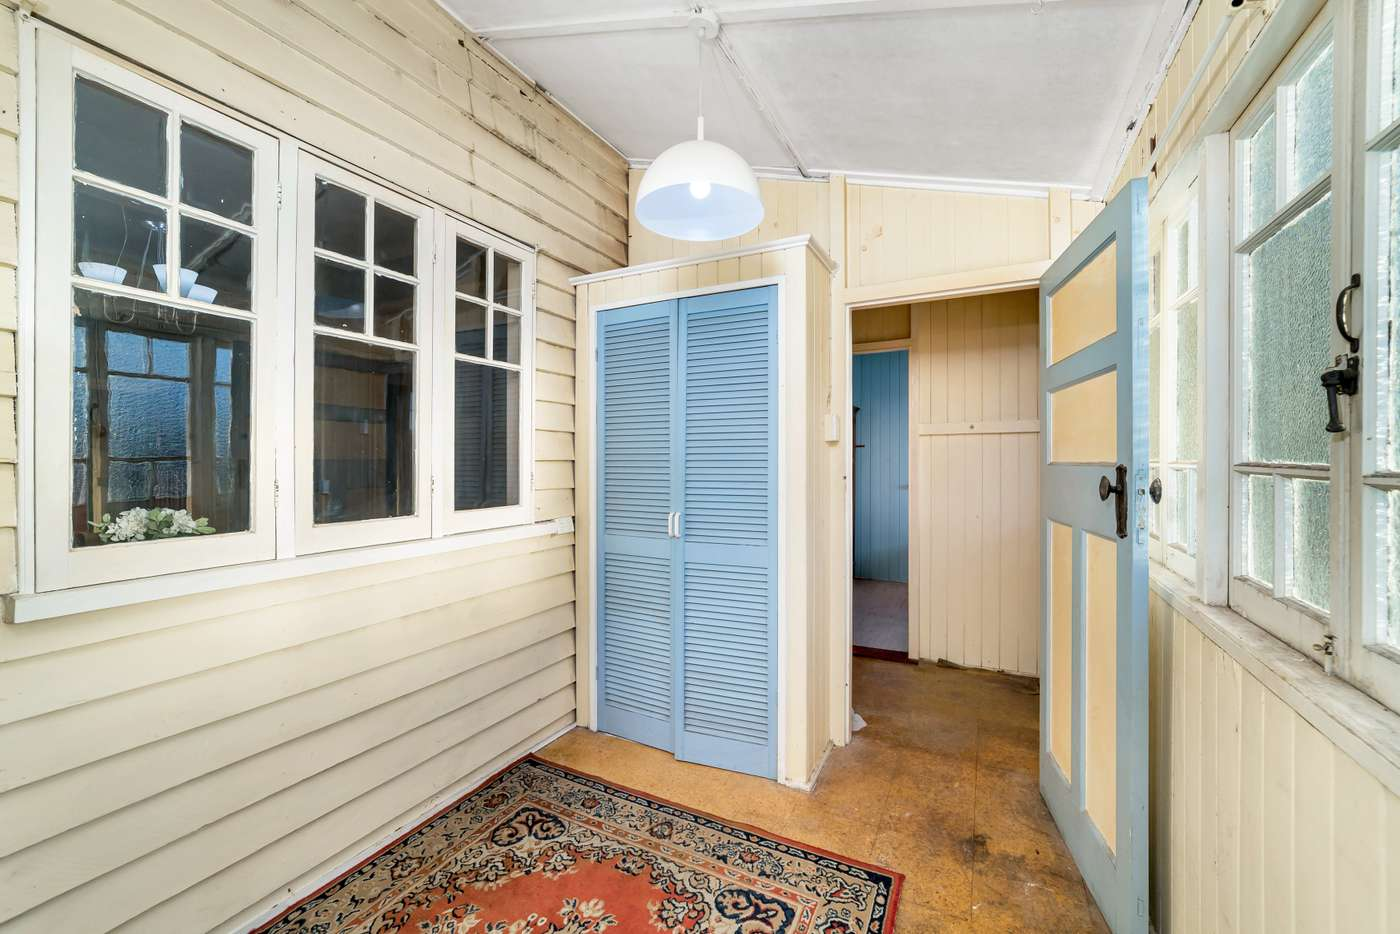 Fifth view of Homely house listing, 31 Mount Street, Greenslopes QLD 4120